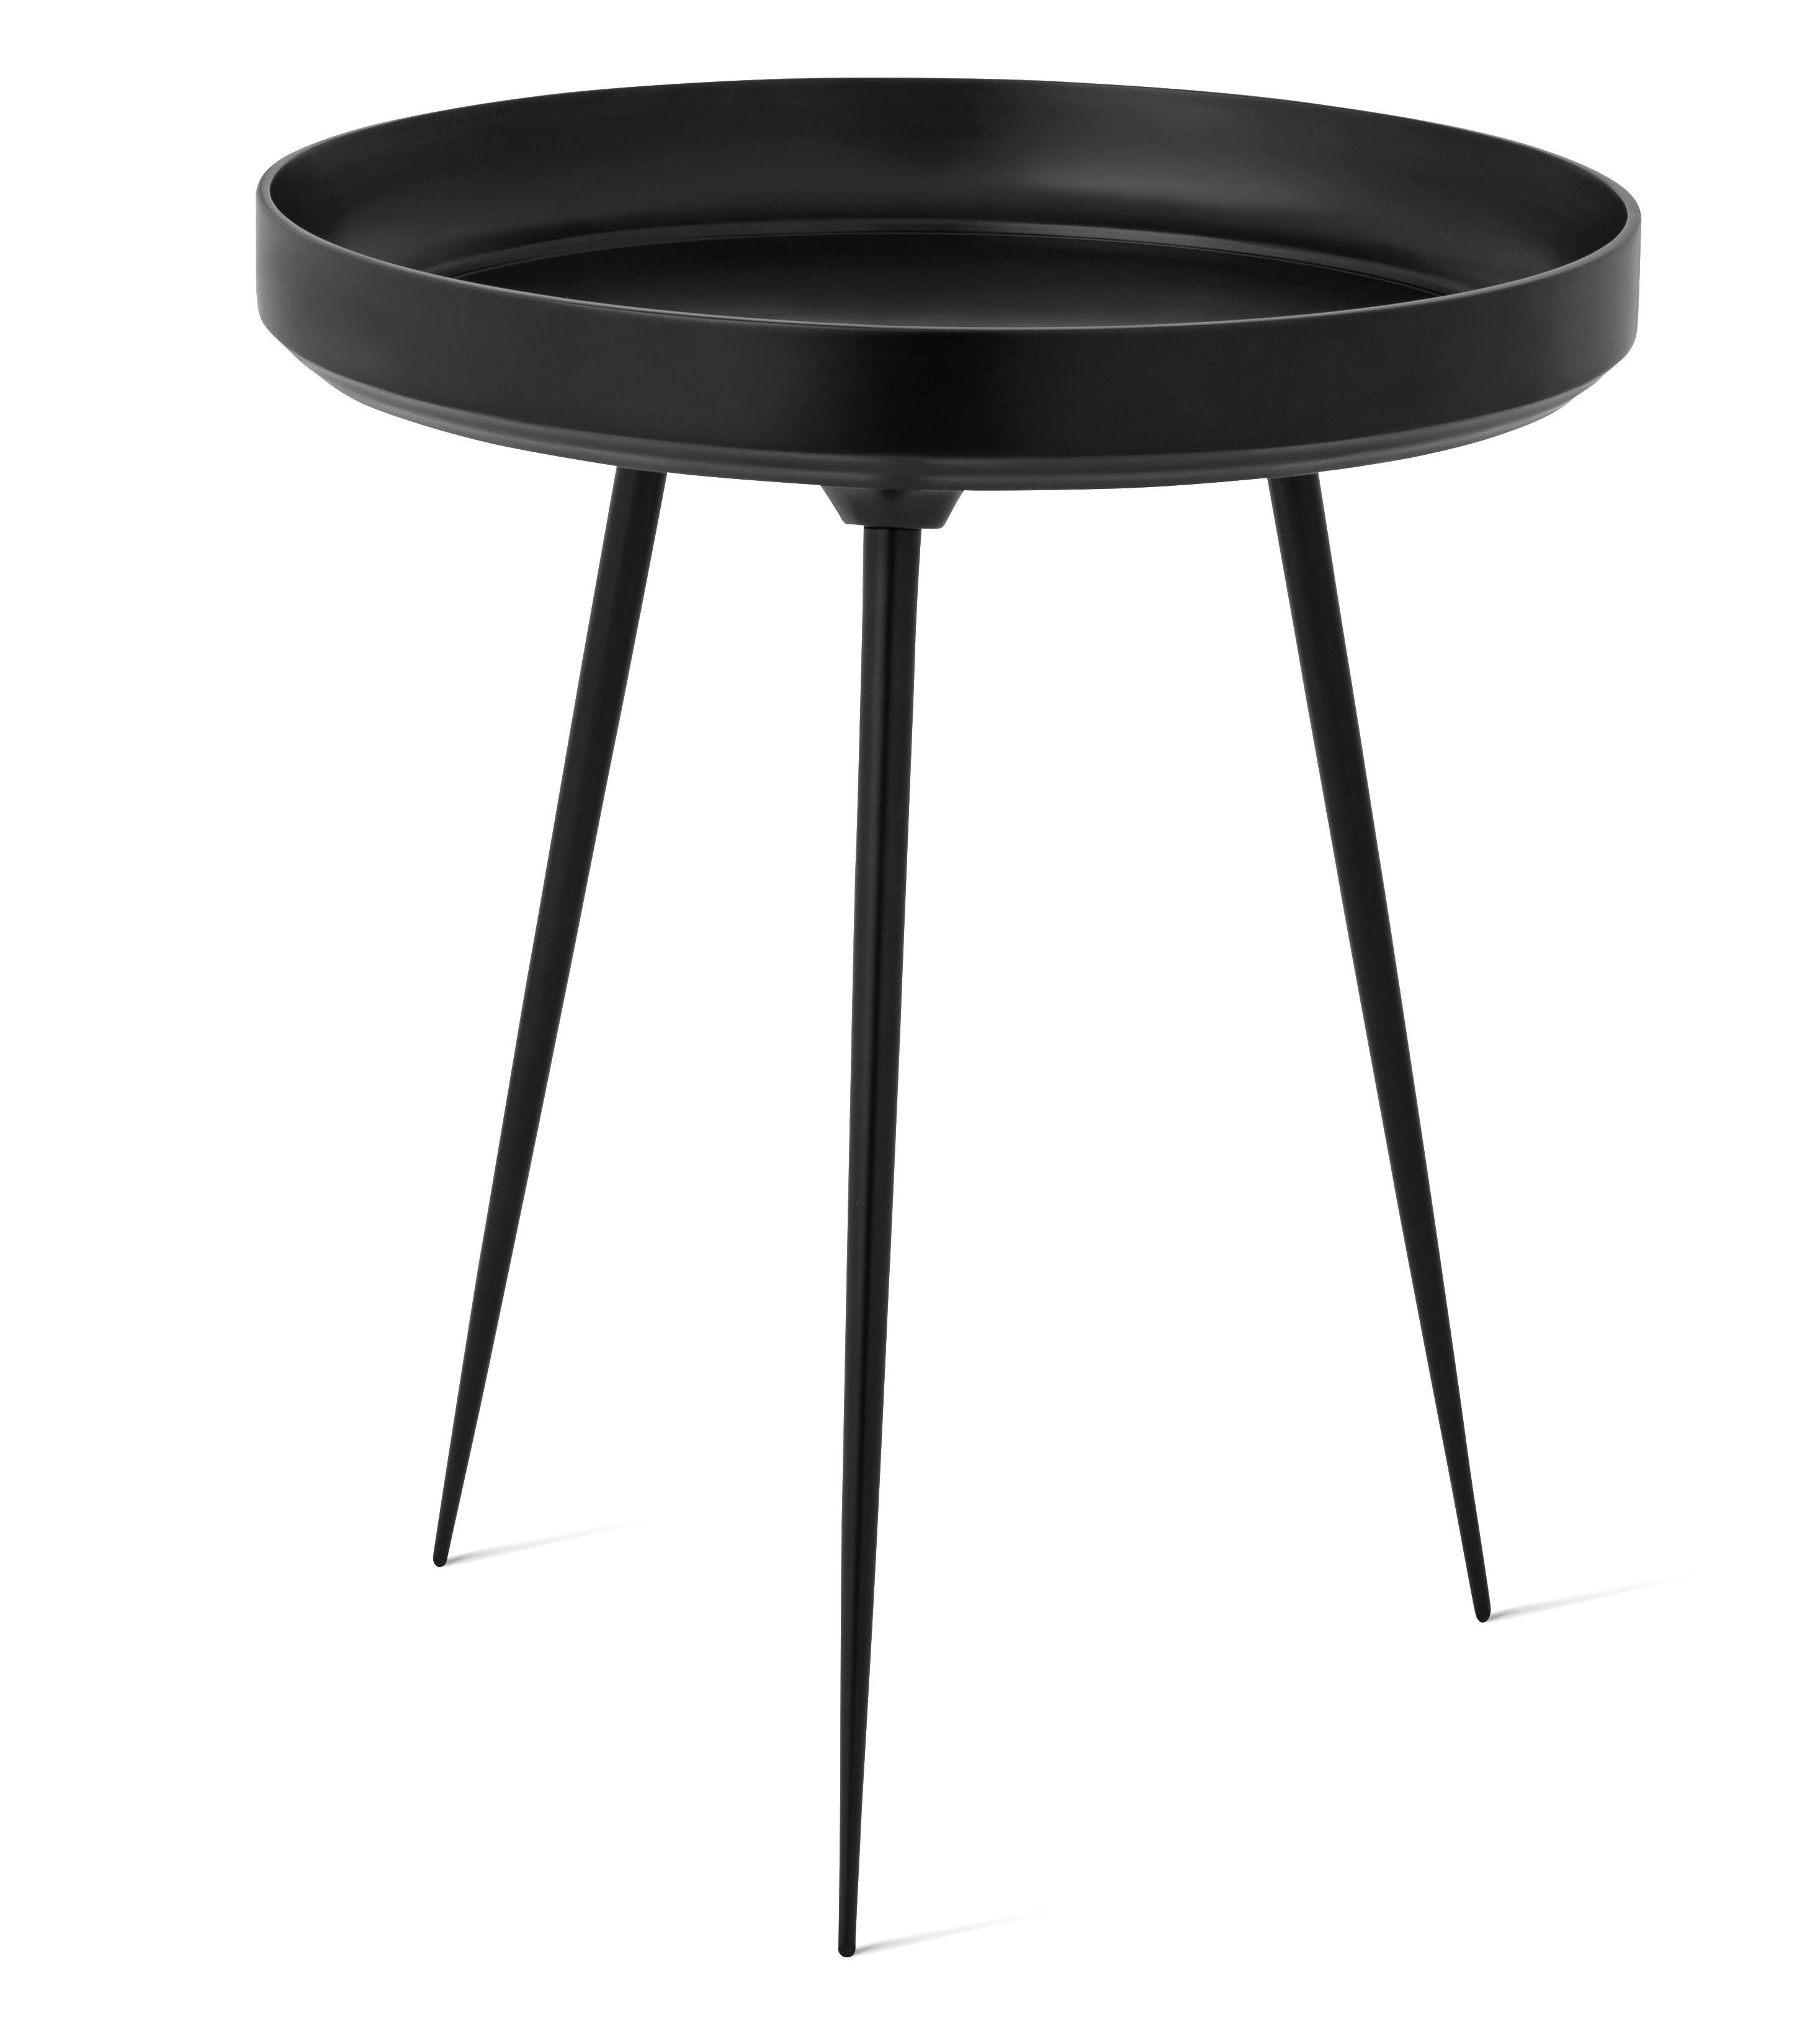 Mater Black Aluminum Bowl Table Haute Living